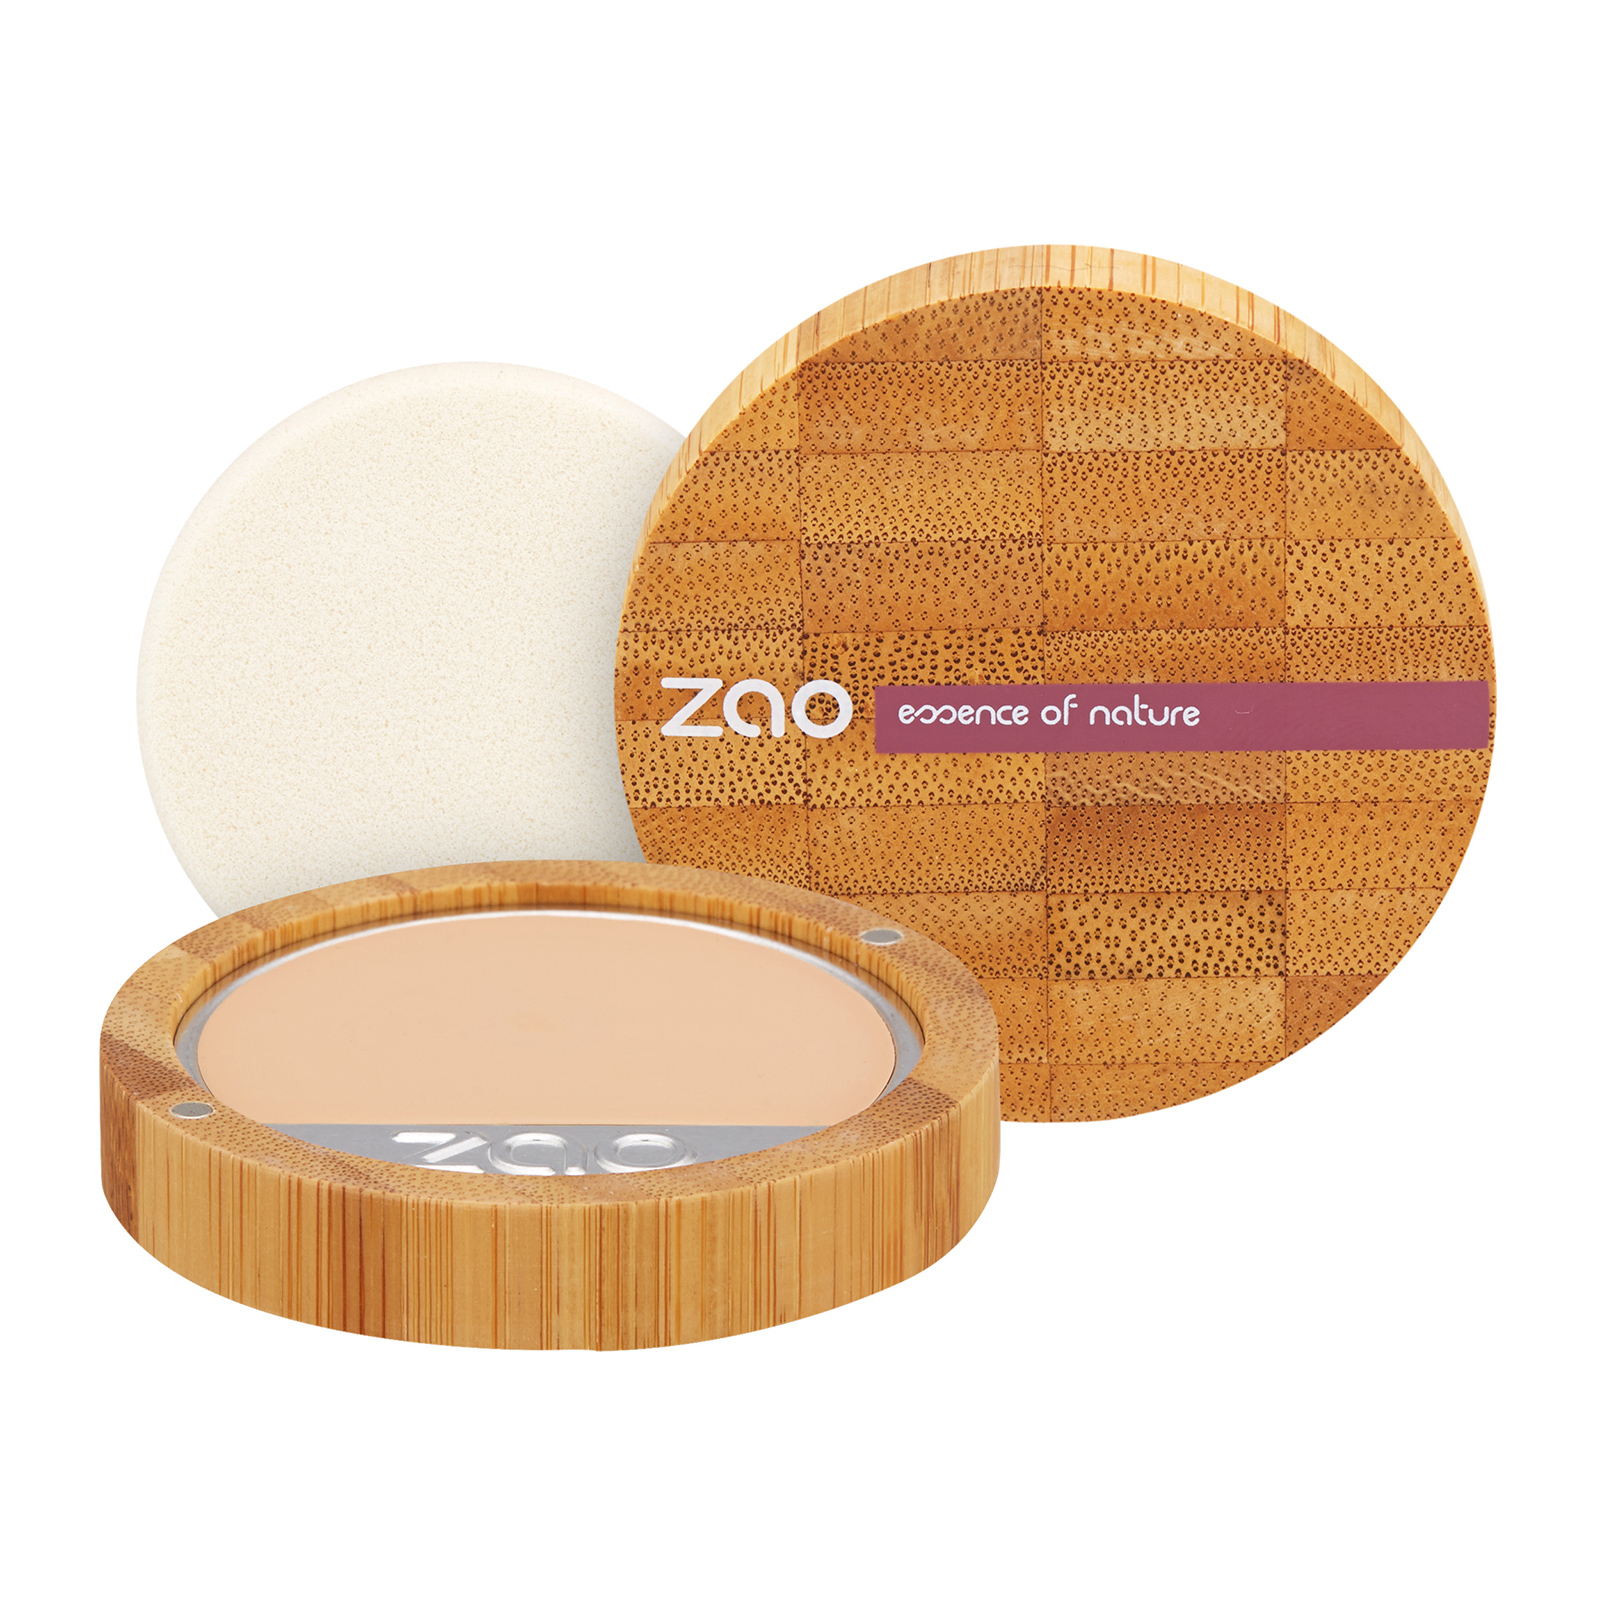 ZAO  Compact foundation 730 Ivory, 0.212oz, 6g from Cosme-De.com